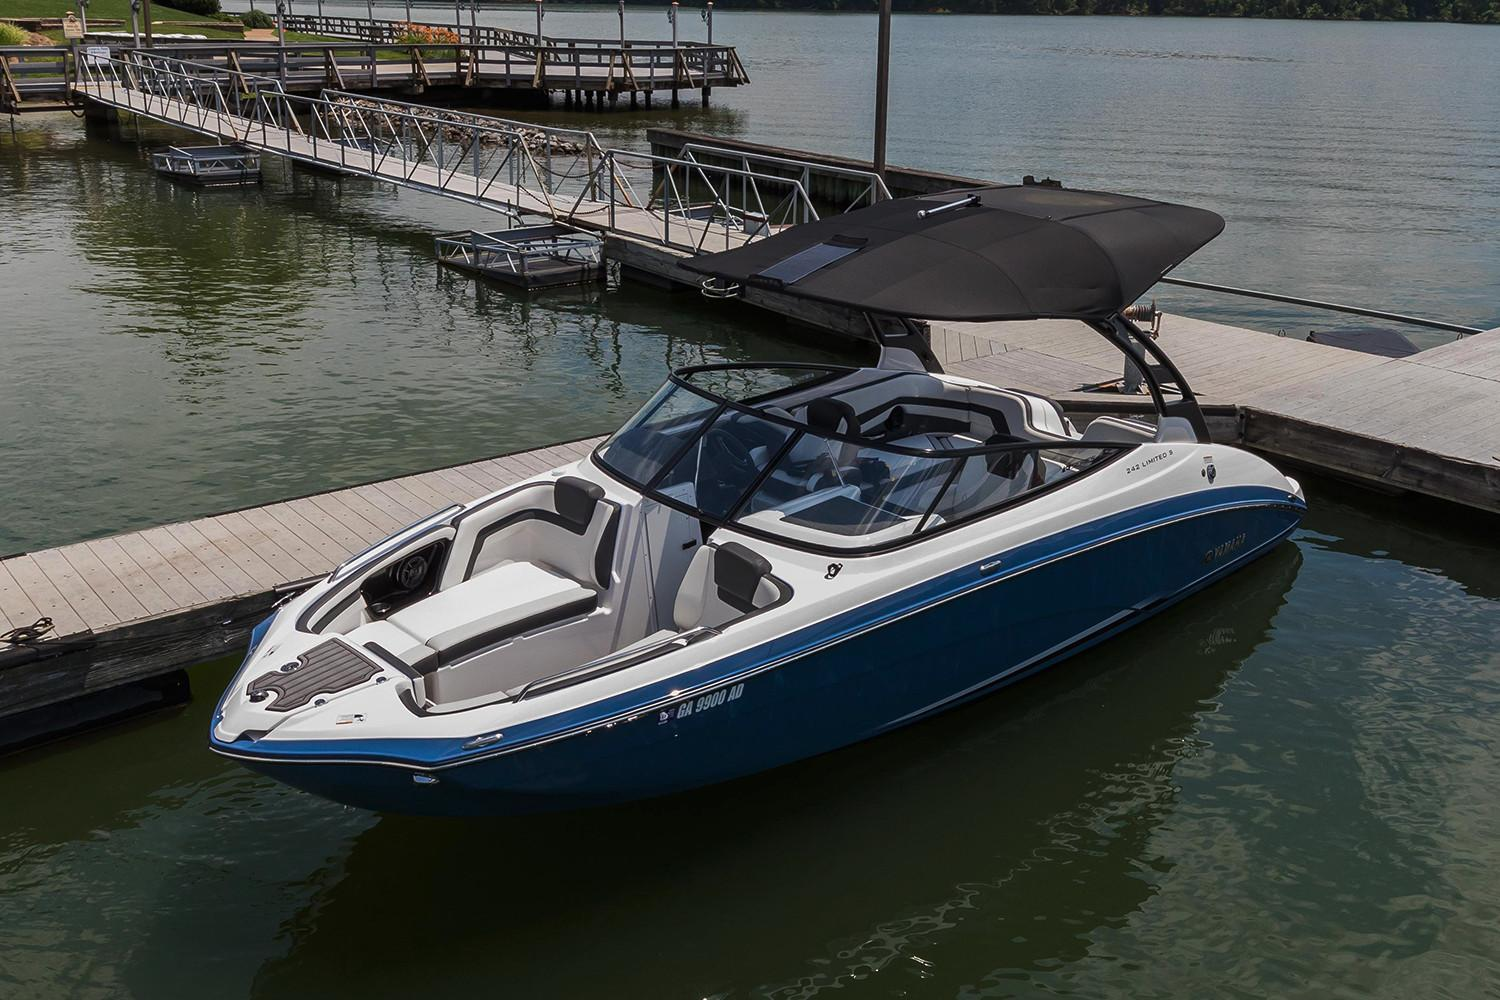 2018 Yamaha 242 Limited S E-Series in Murrieta, California